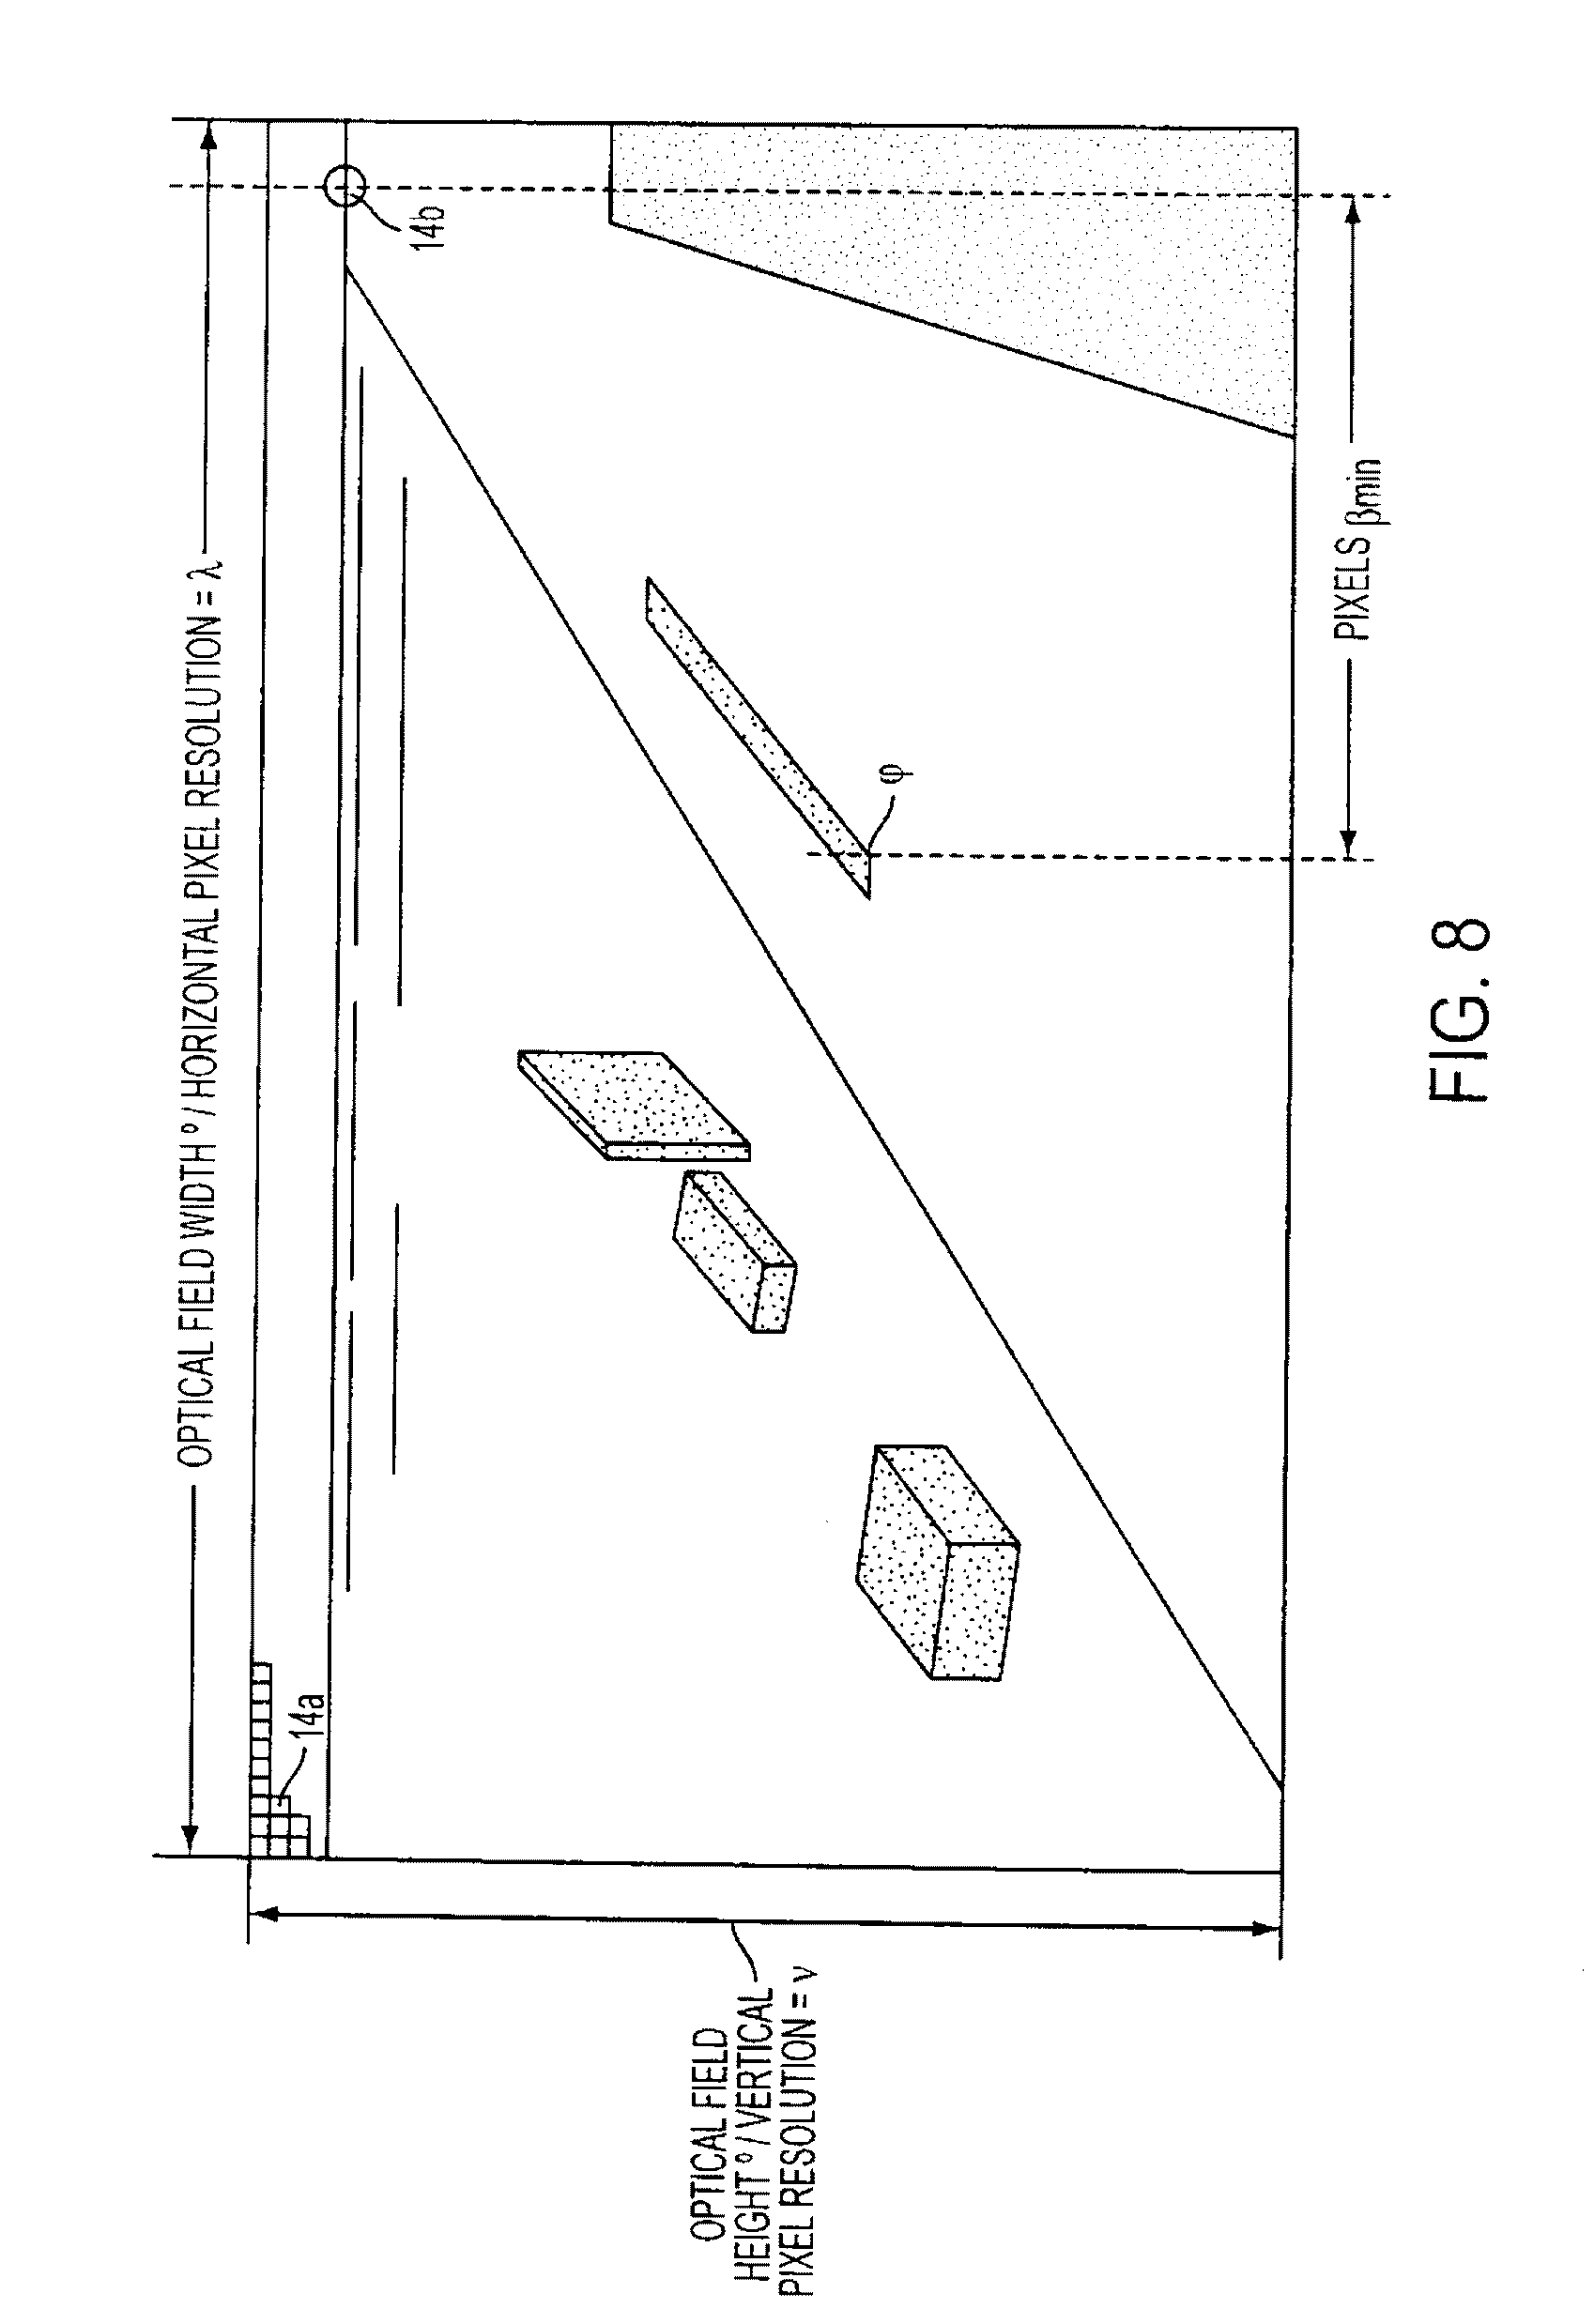 Us9555803b2 Driver Assistance System For Vehicle Google Patents